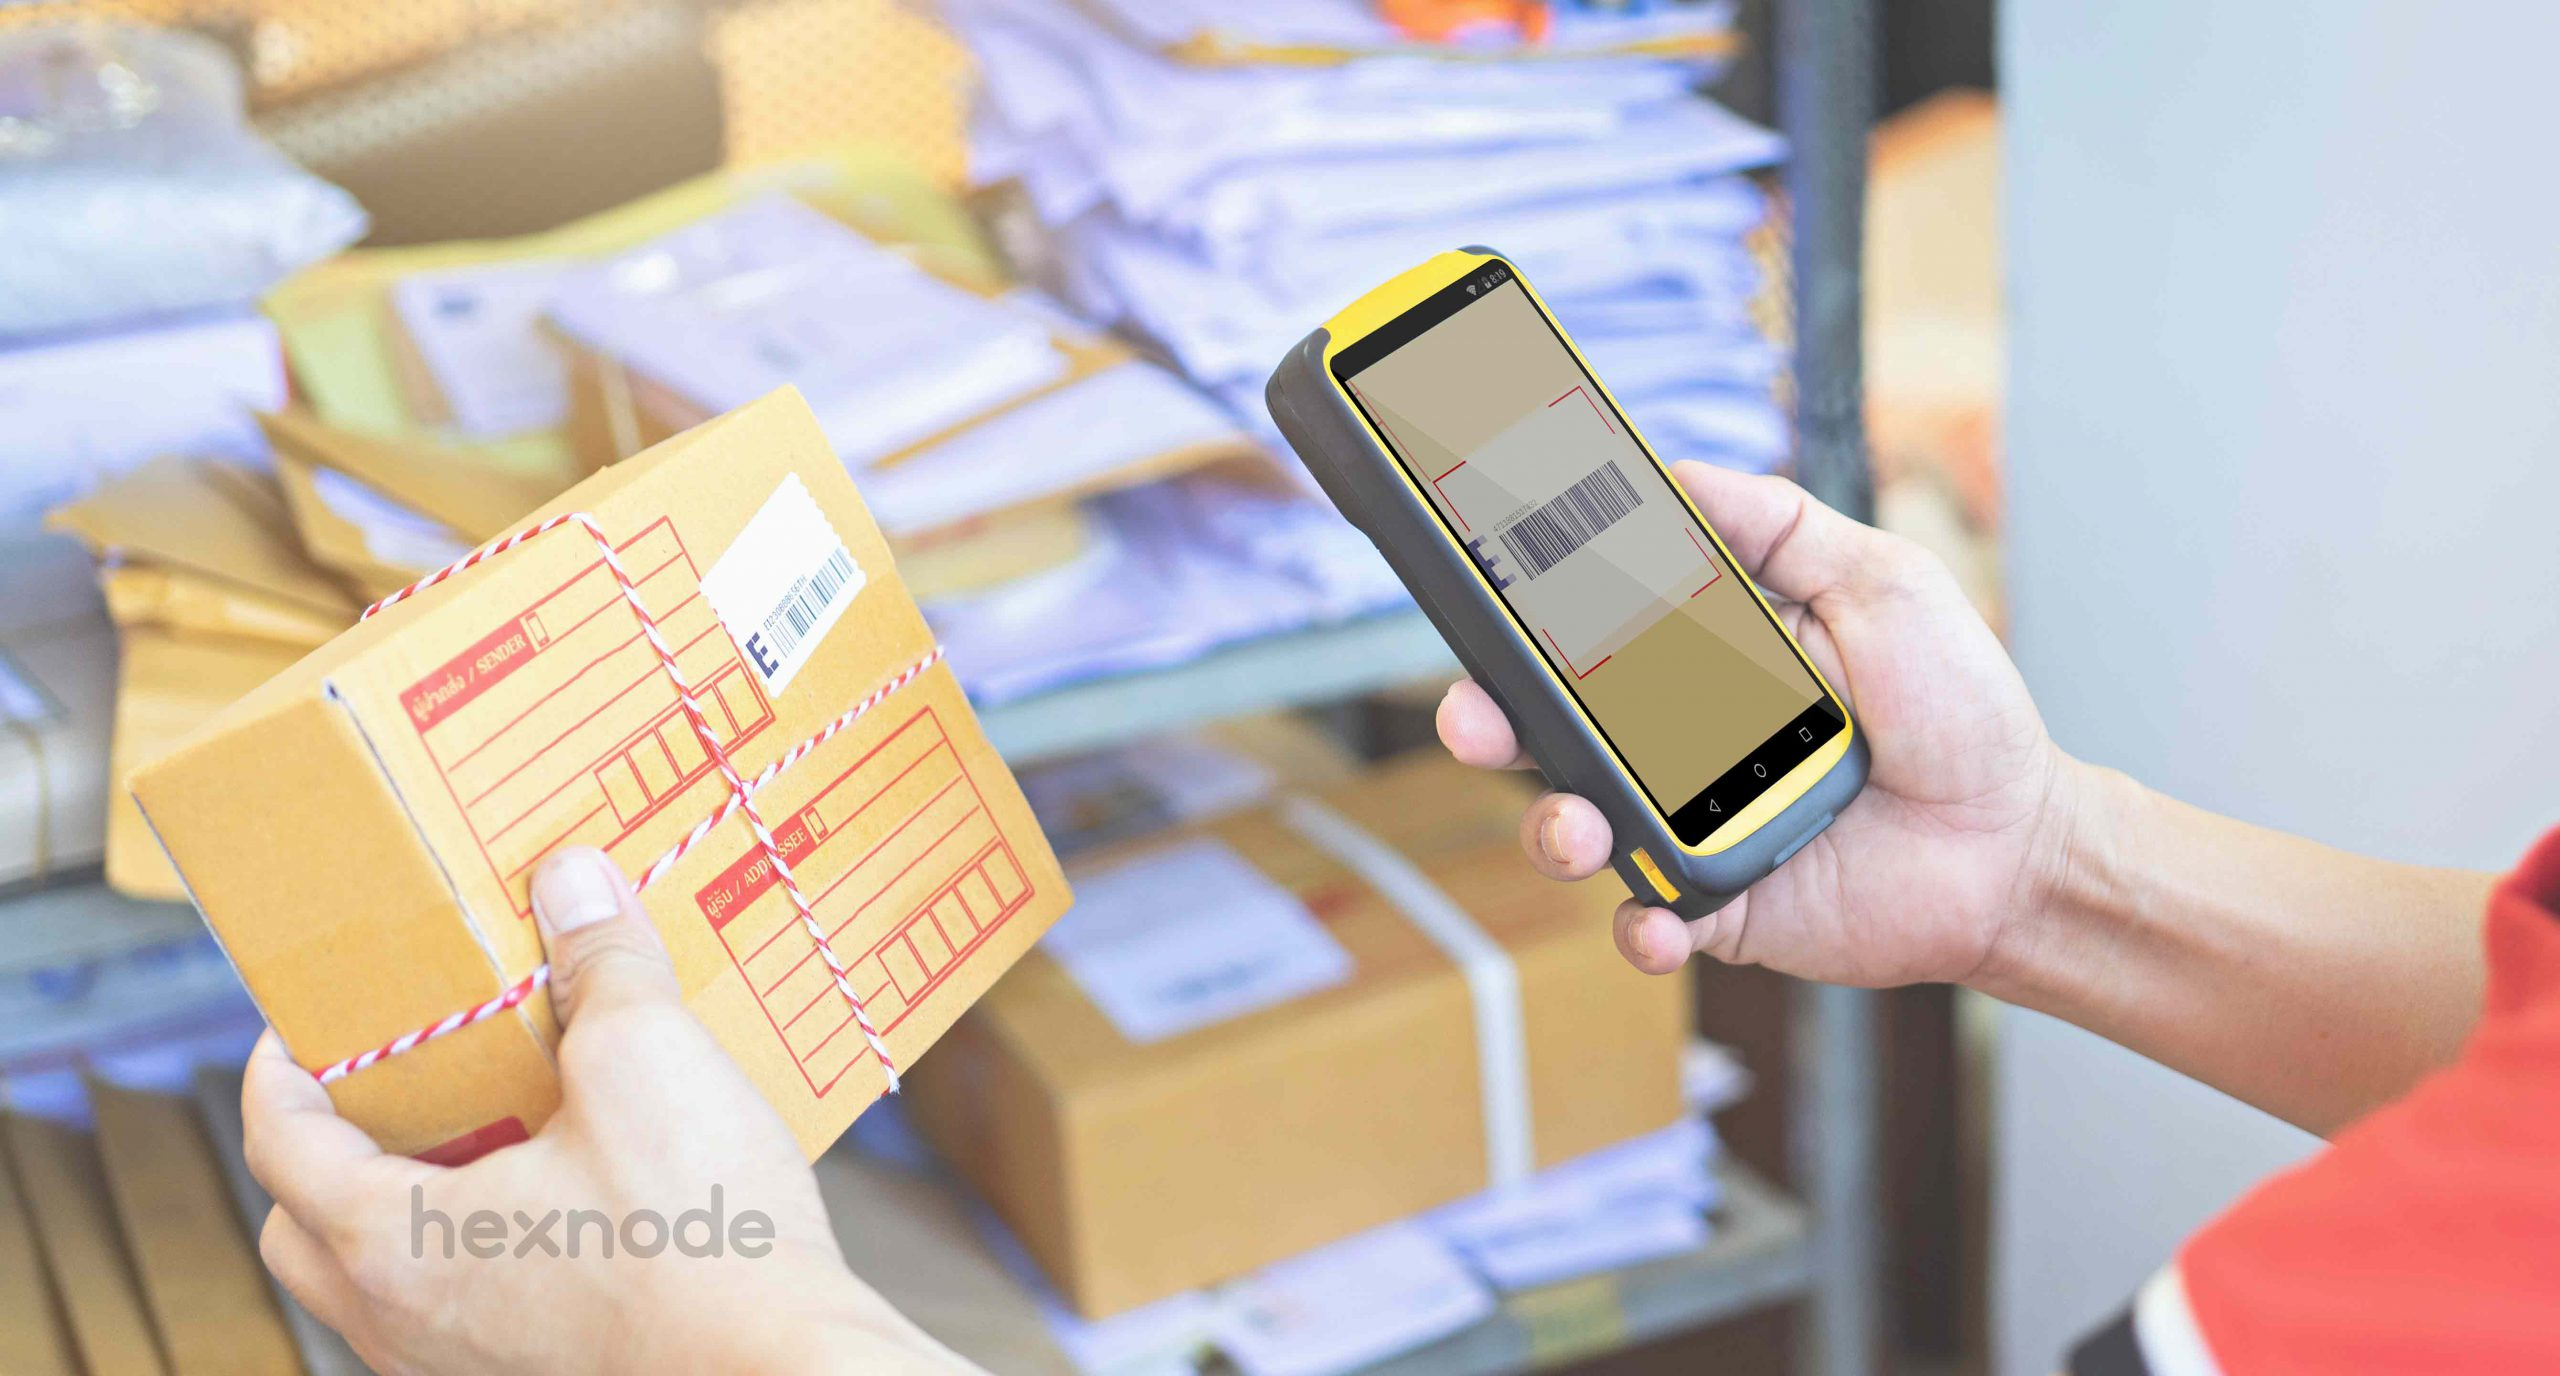 How to setup kyocera mobile device management with hexnode mdm